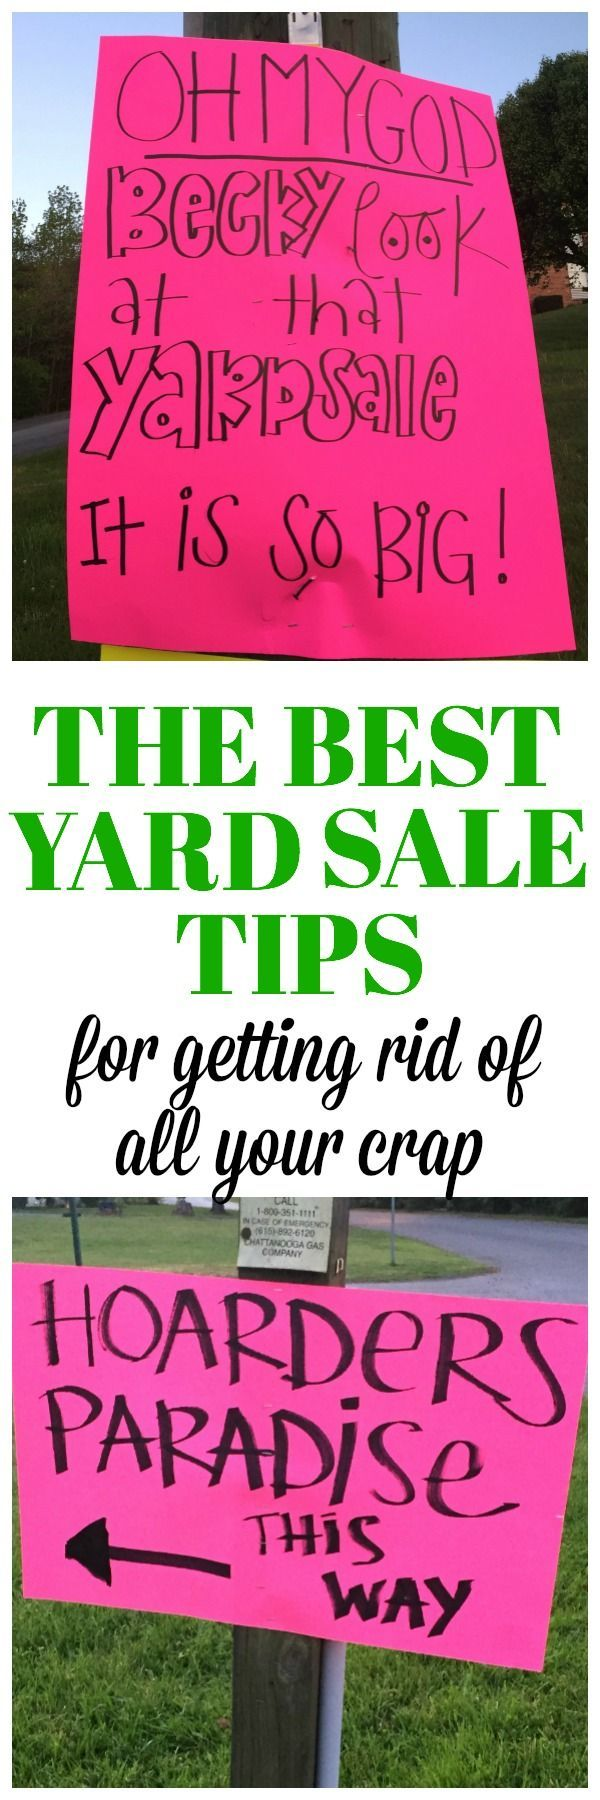 The Best Yard Sale Tips To Get Rid of All Your Junk – Free for Sale Signs for Cars